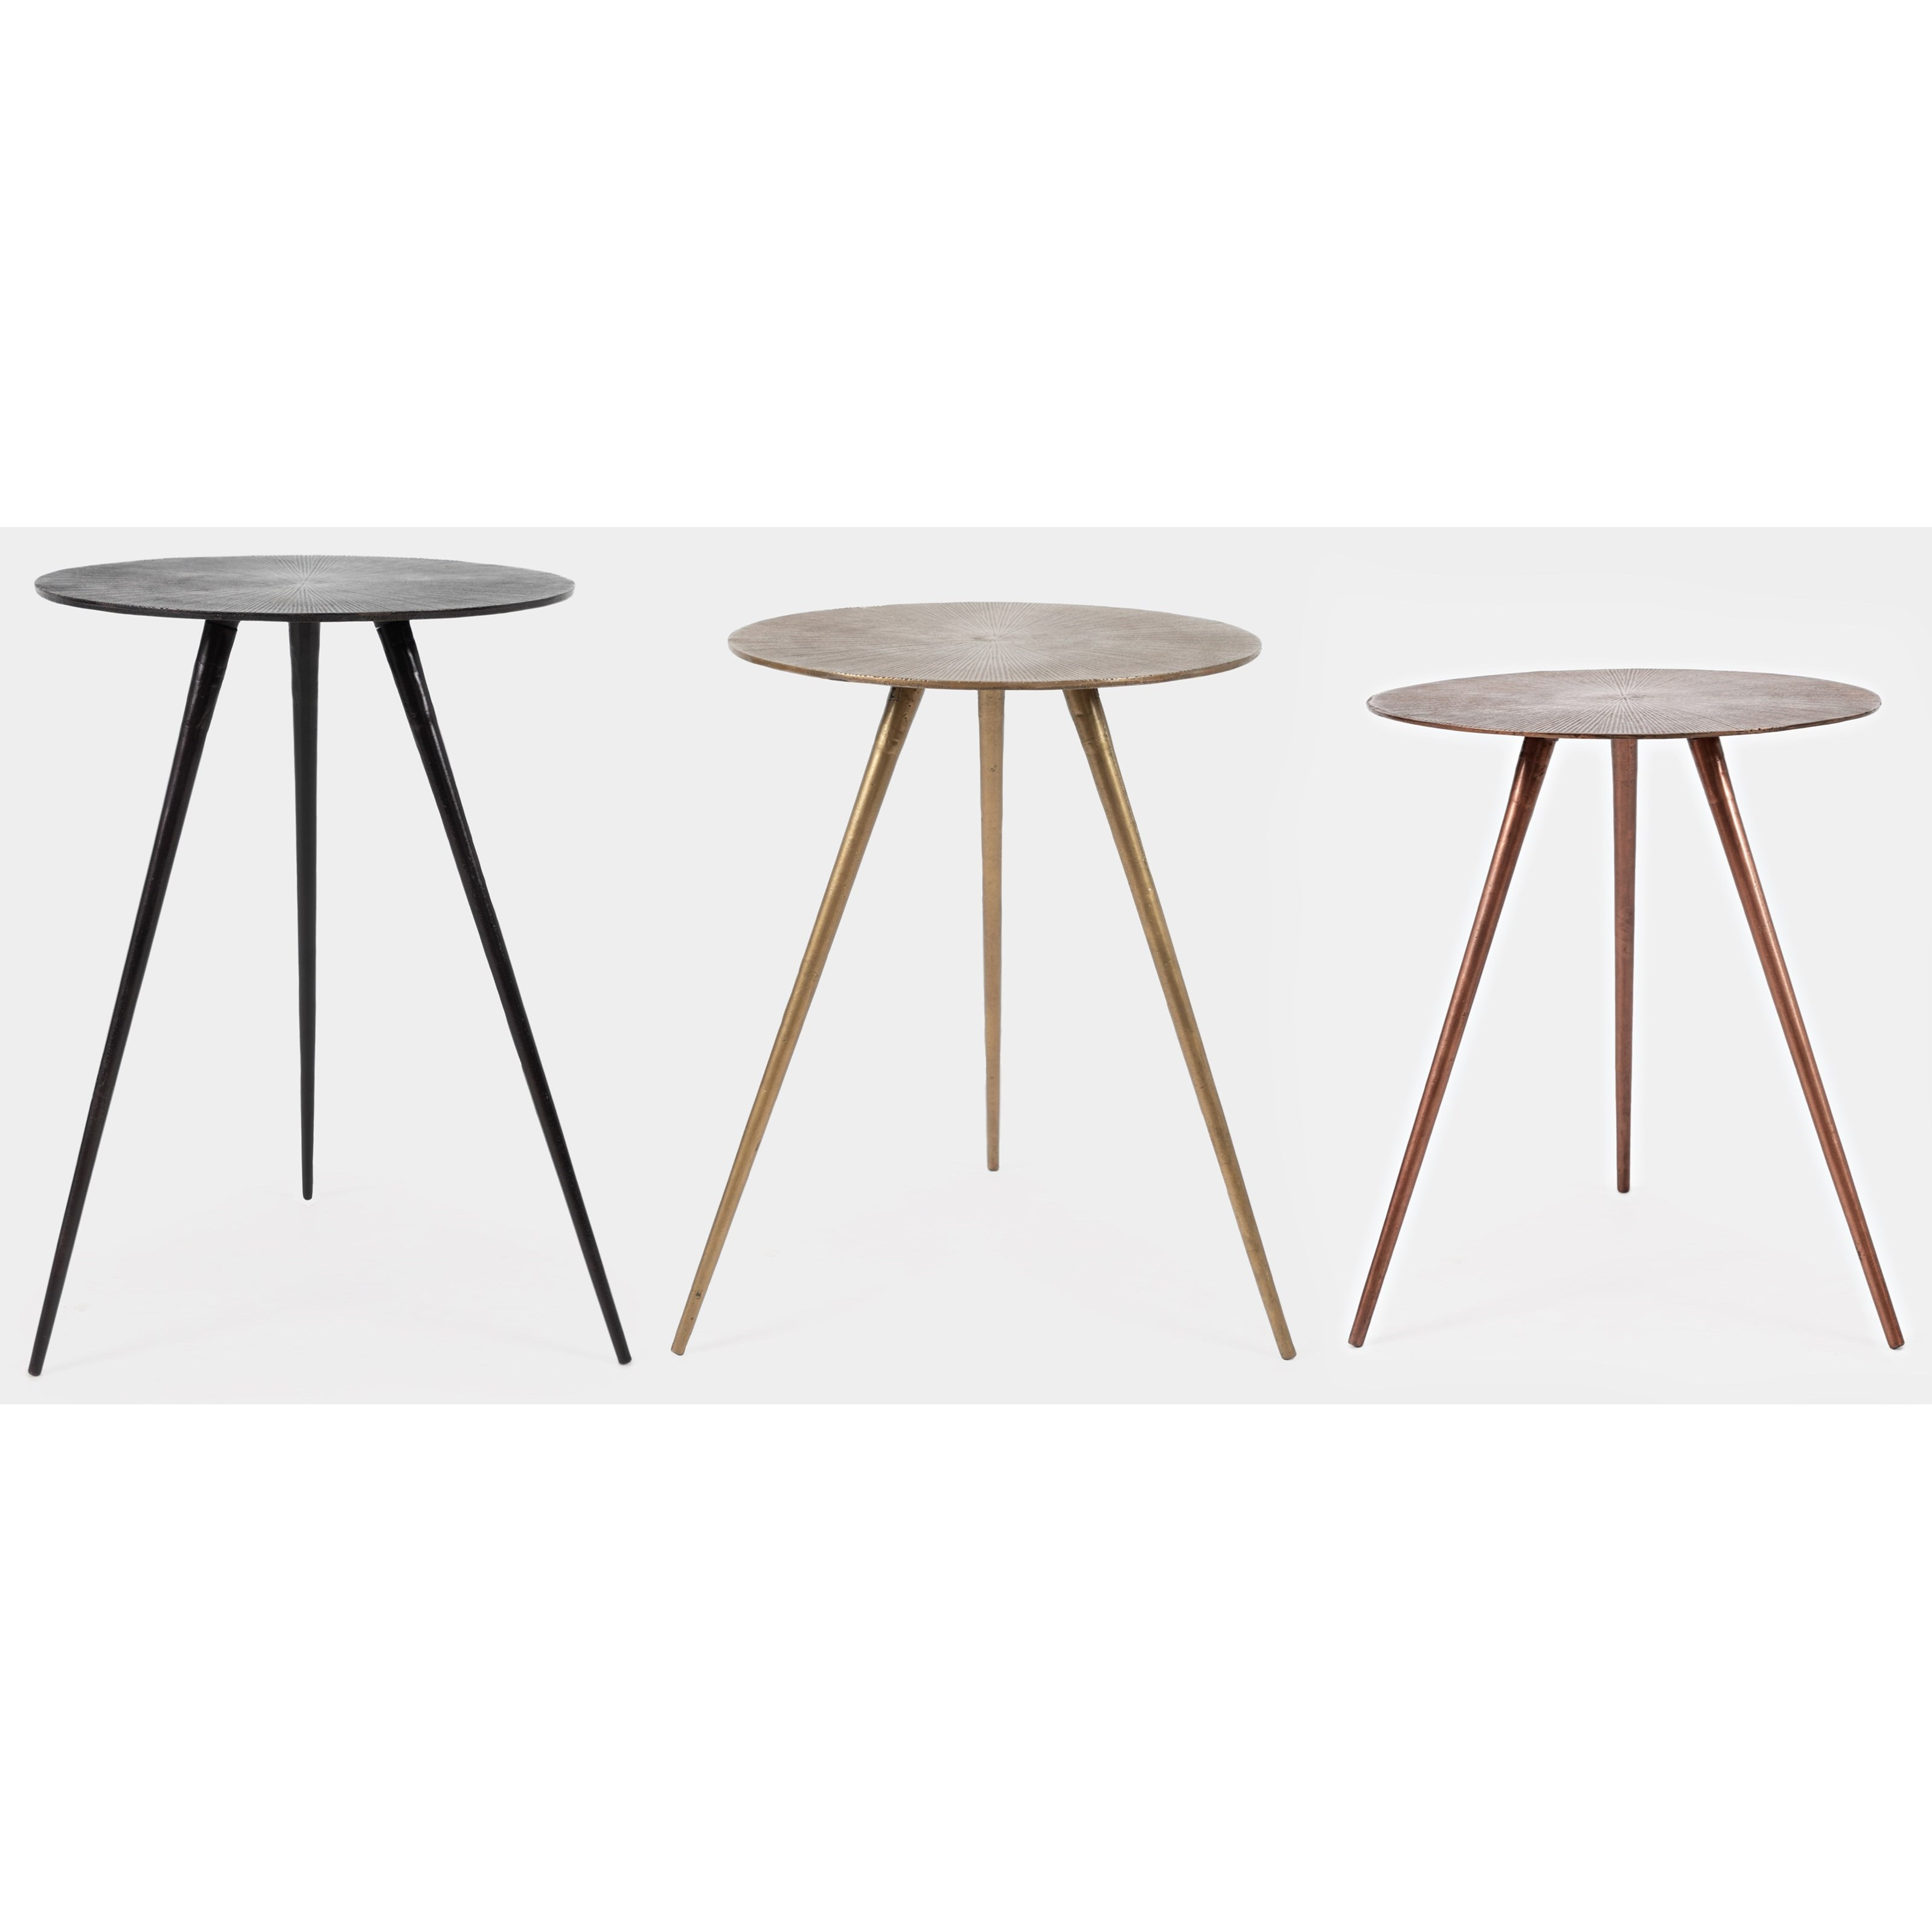 Global Archive Carly Accent Tables - 3 Piece Set by Jofran at Stoney Creek Furniture